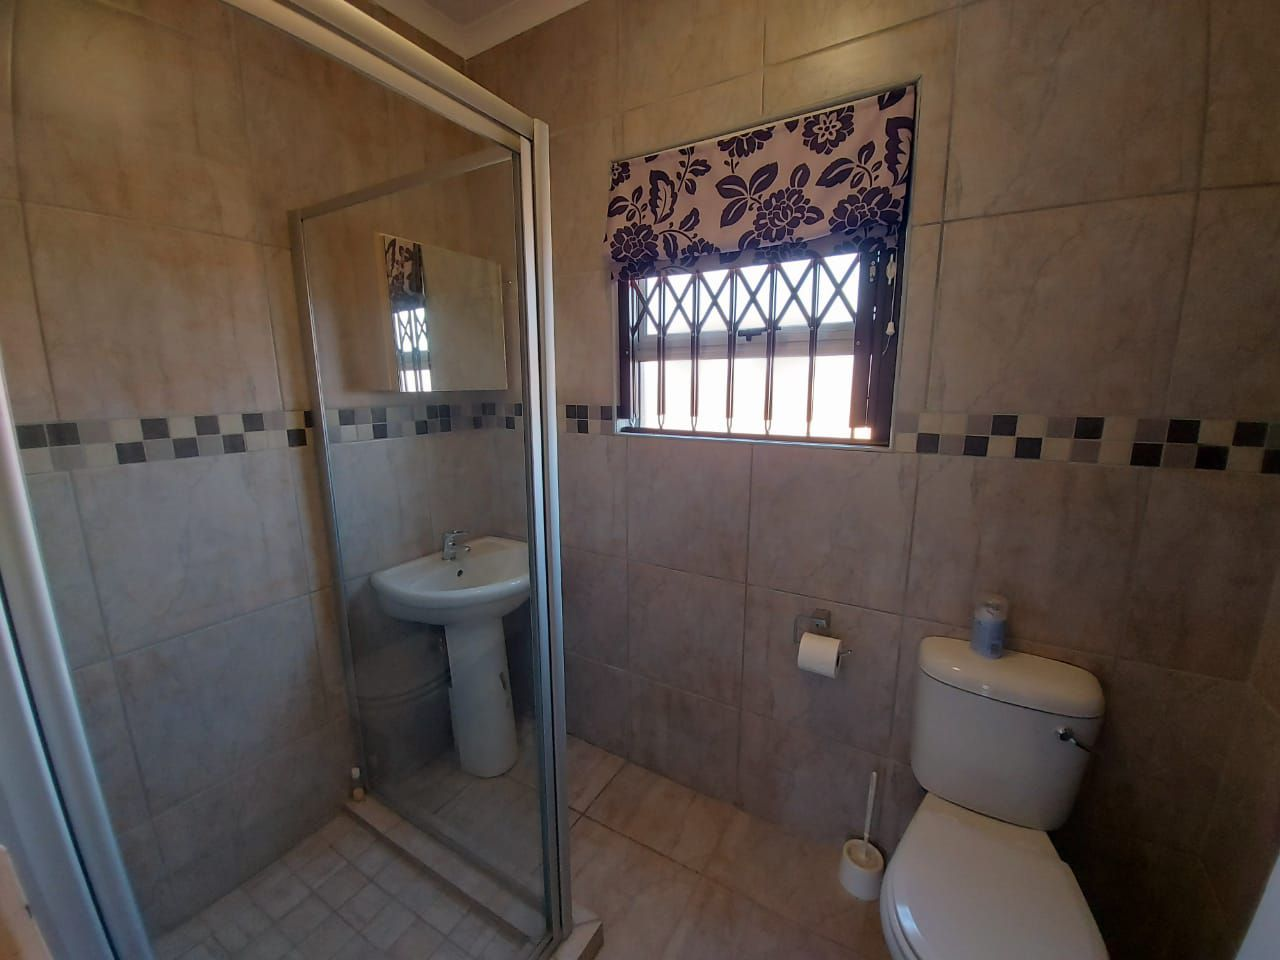 House in Bailliepark - WhatsApp Image 2020-09-04 at 14.17.50 (6).jpeg